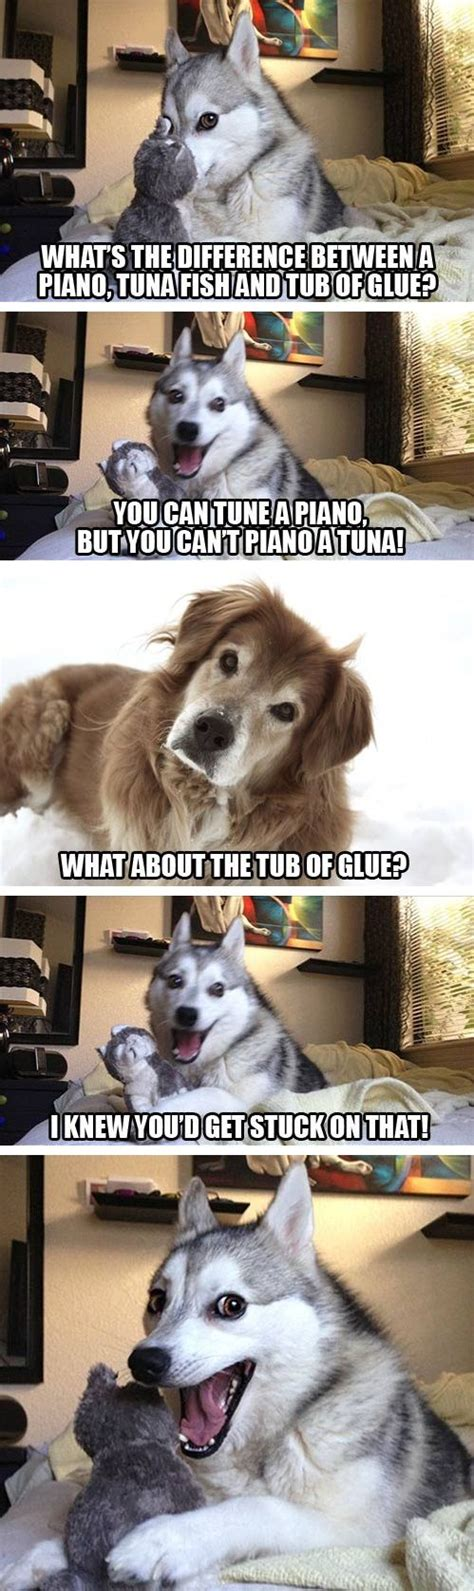 T Dog Meme - 39 best images about husky memes on pinterest dog names